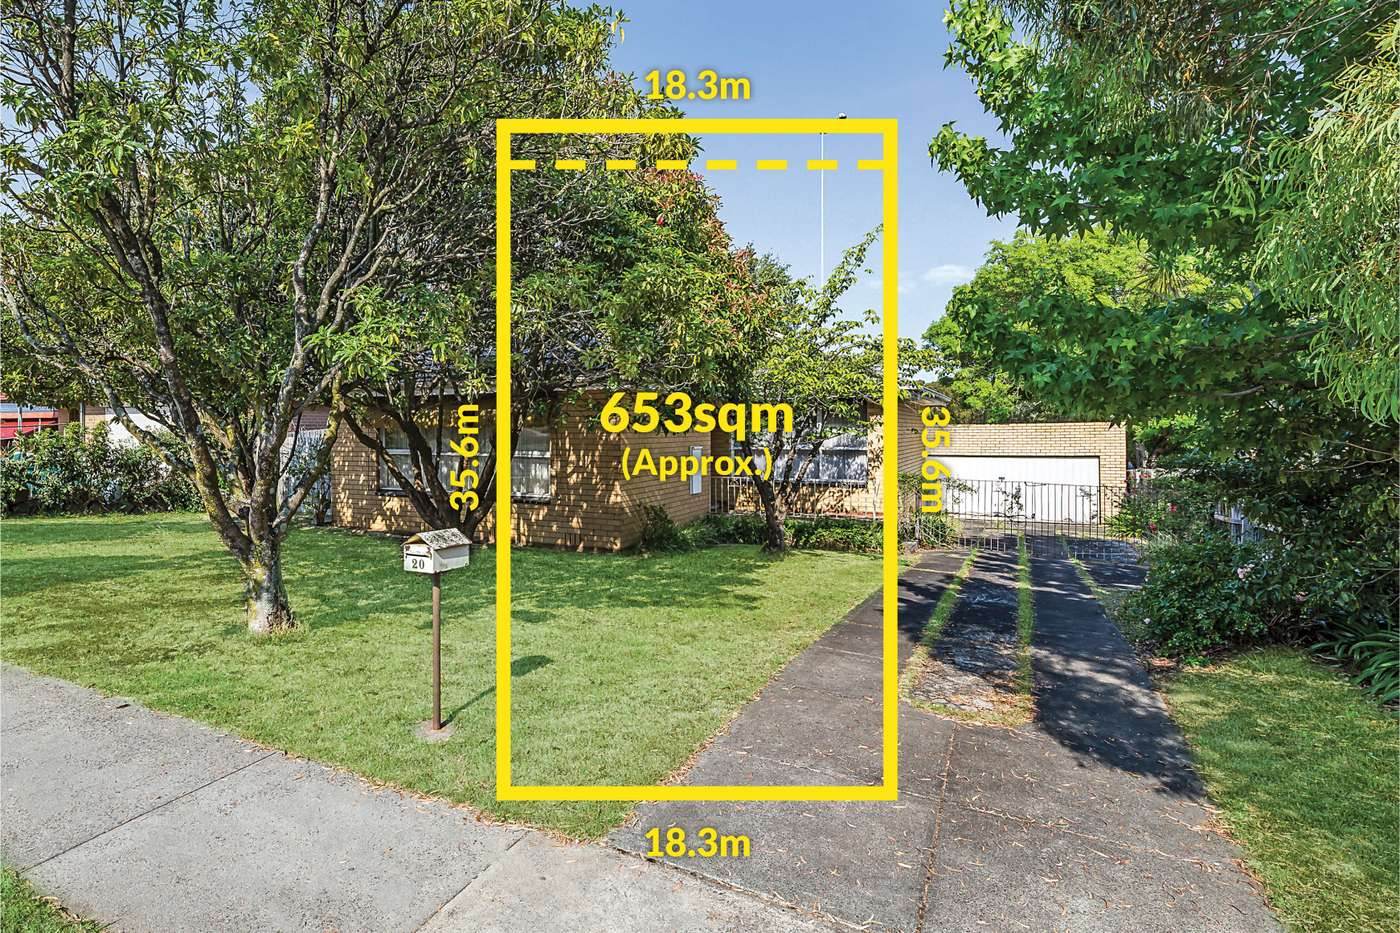 Main view of Homely house listing, 20 Brentwood Drive, Glen Waverley, VIC 3150